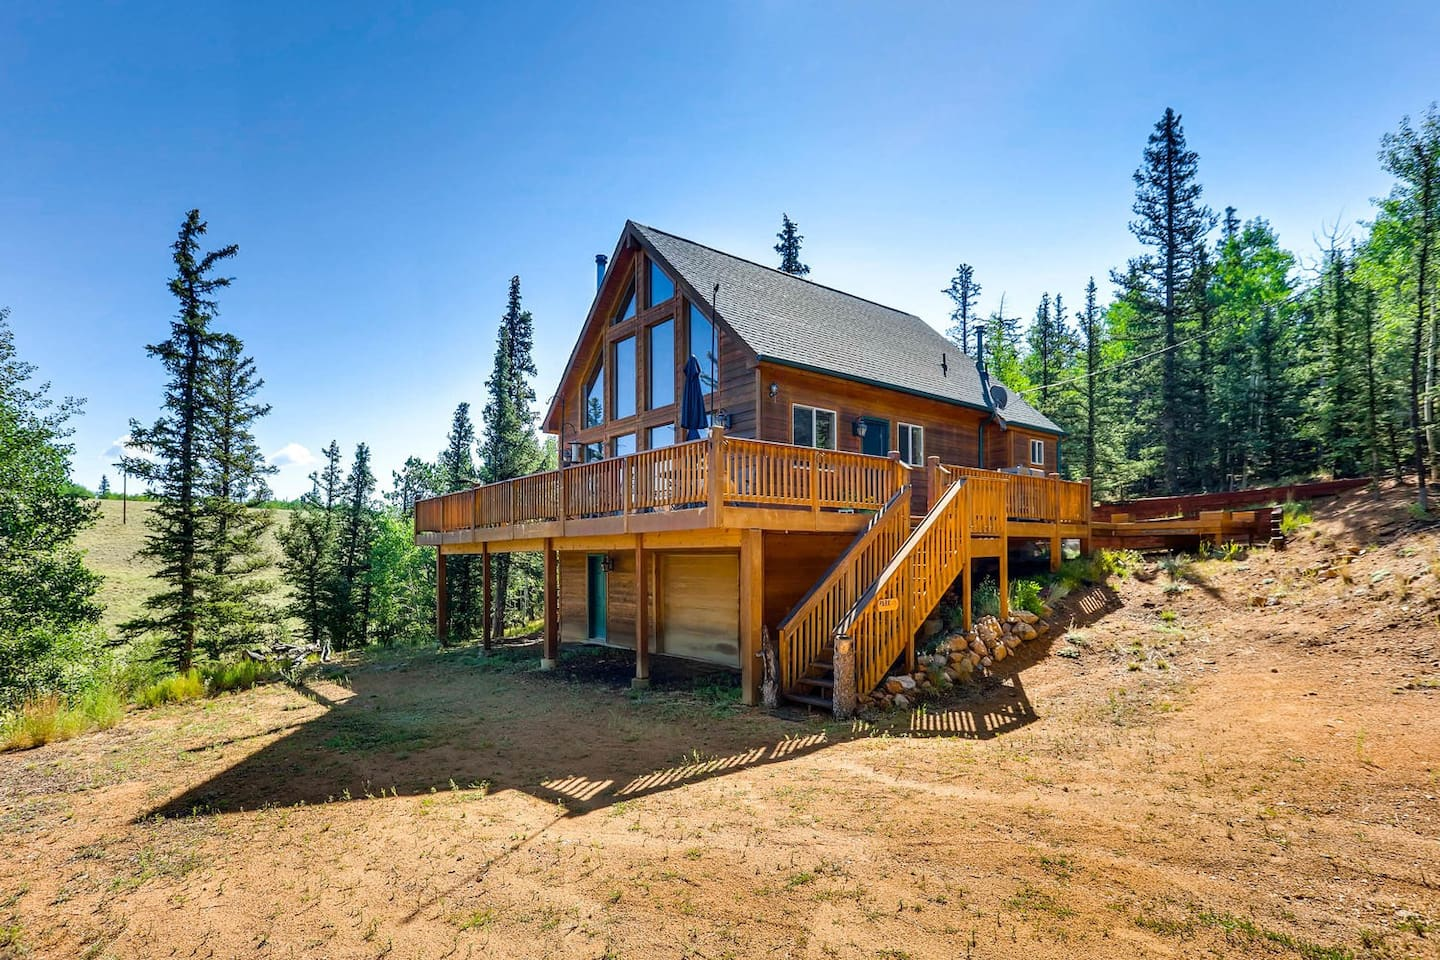 This beautiful home is located atop a mountain on a wooded and secluded property. The views of the white-capped mountains are breath-taking!